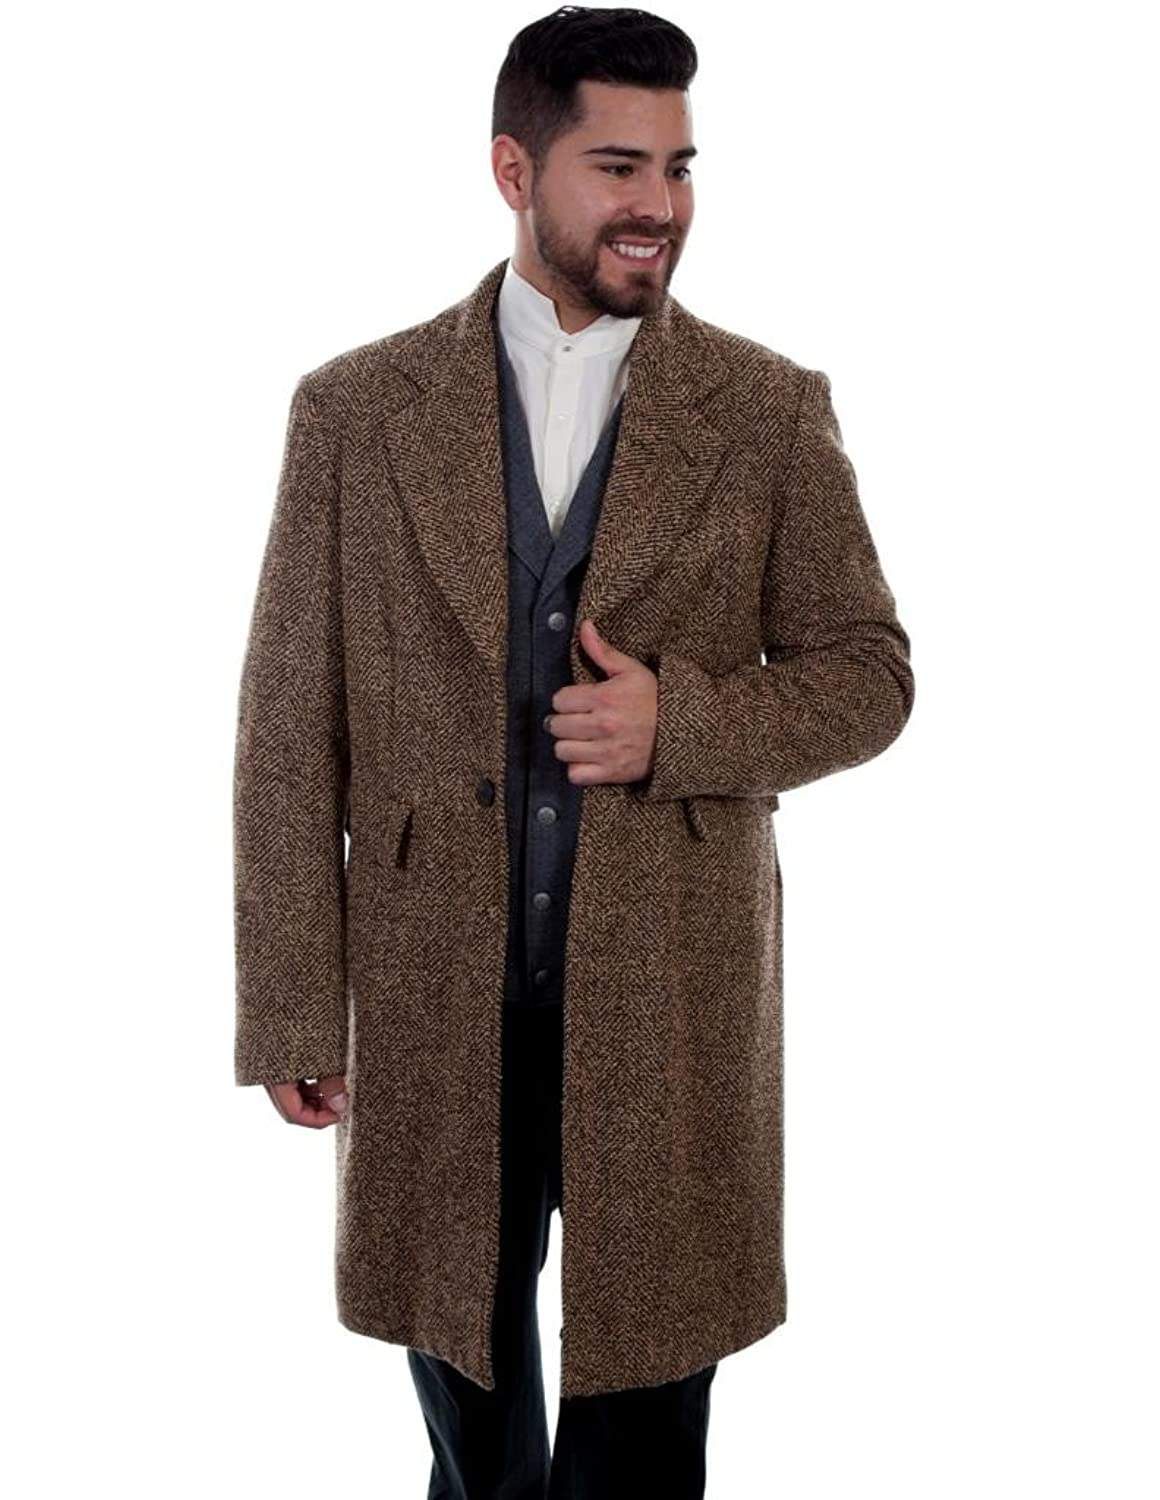 Men's Steampunk Jackets, Coats & Suits Scully Western Coat Mens Herringbone Frock Button Flap Pockets 521129 $239.95 AT vintagedancer.com